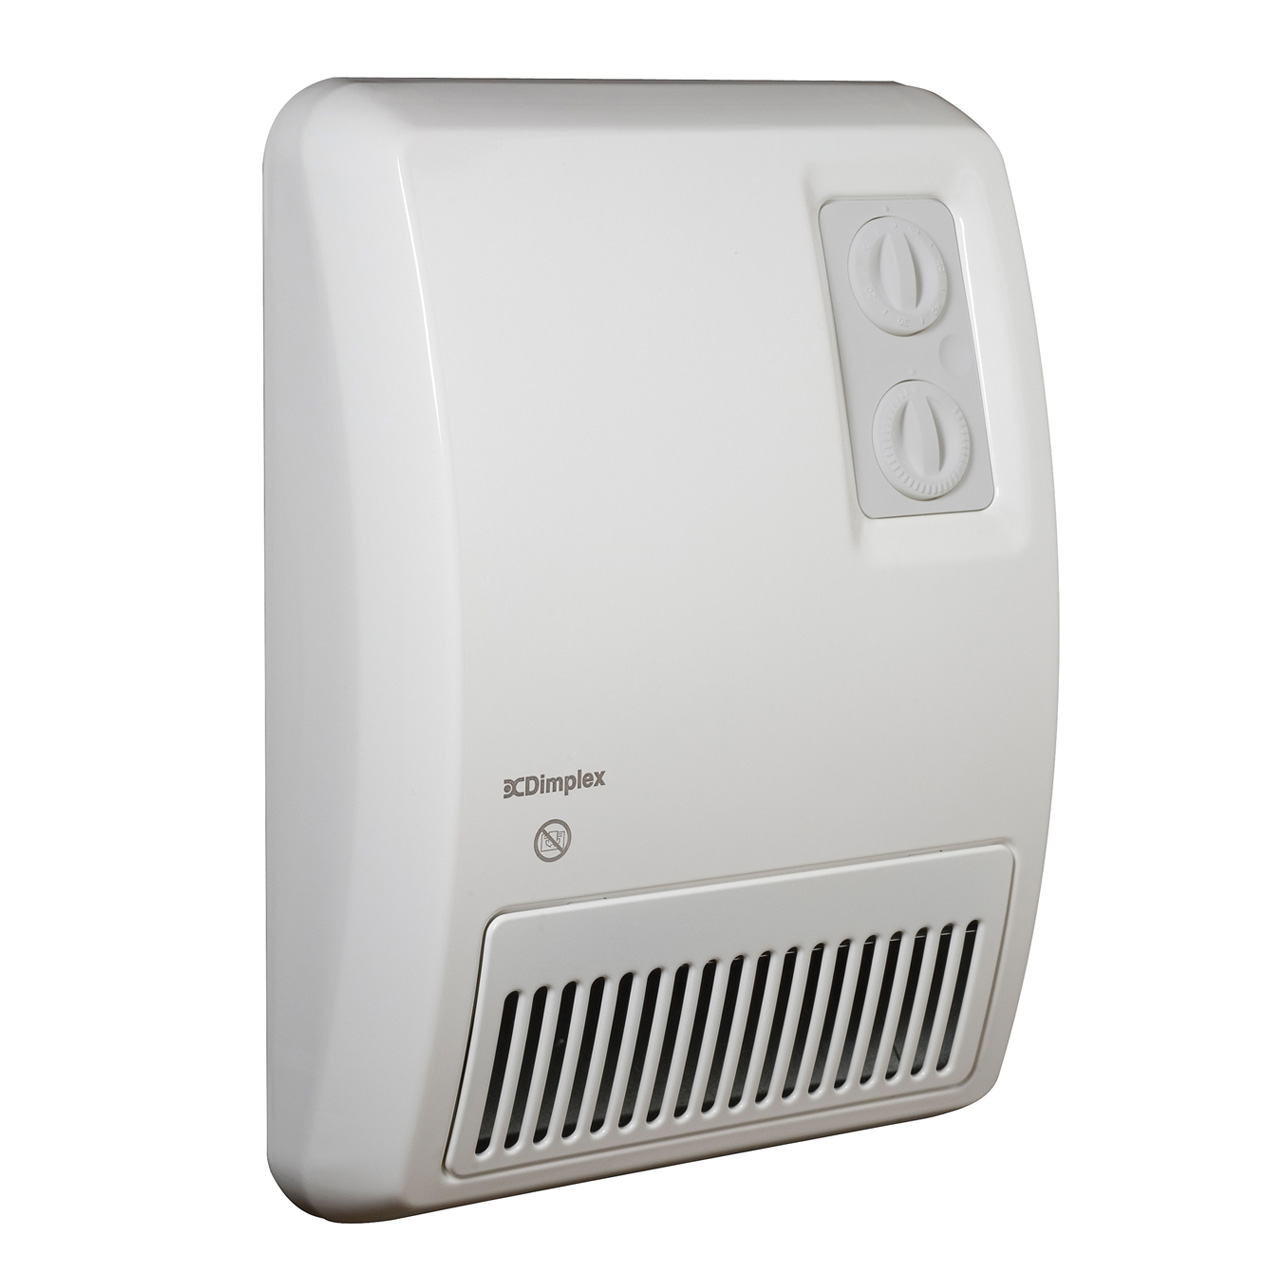 Space heater bathroom - Cdimplex Wall Mount Space Heater In White With Double Controller